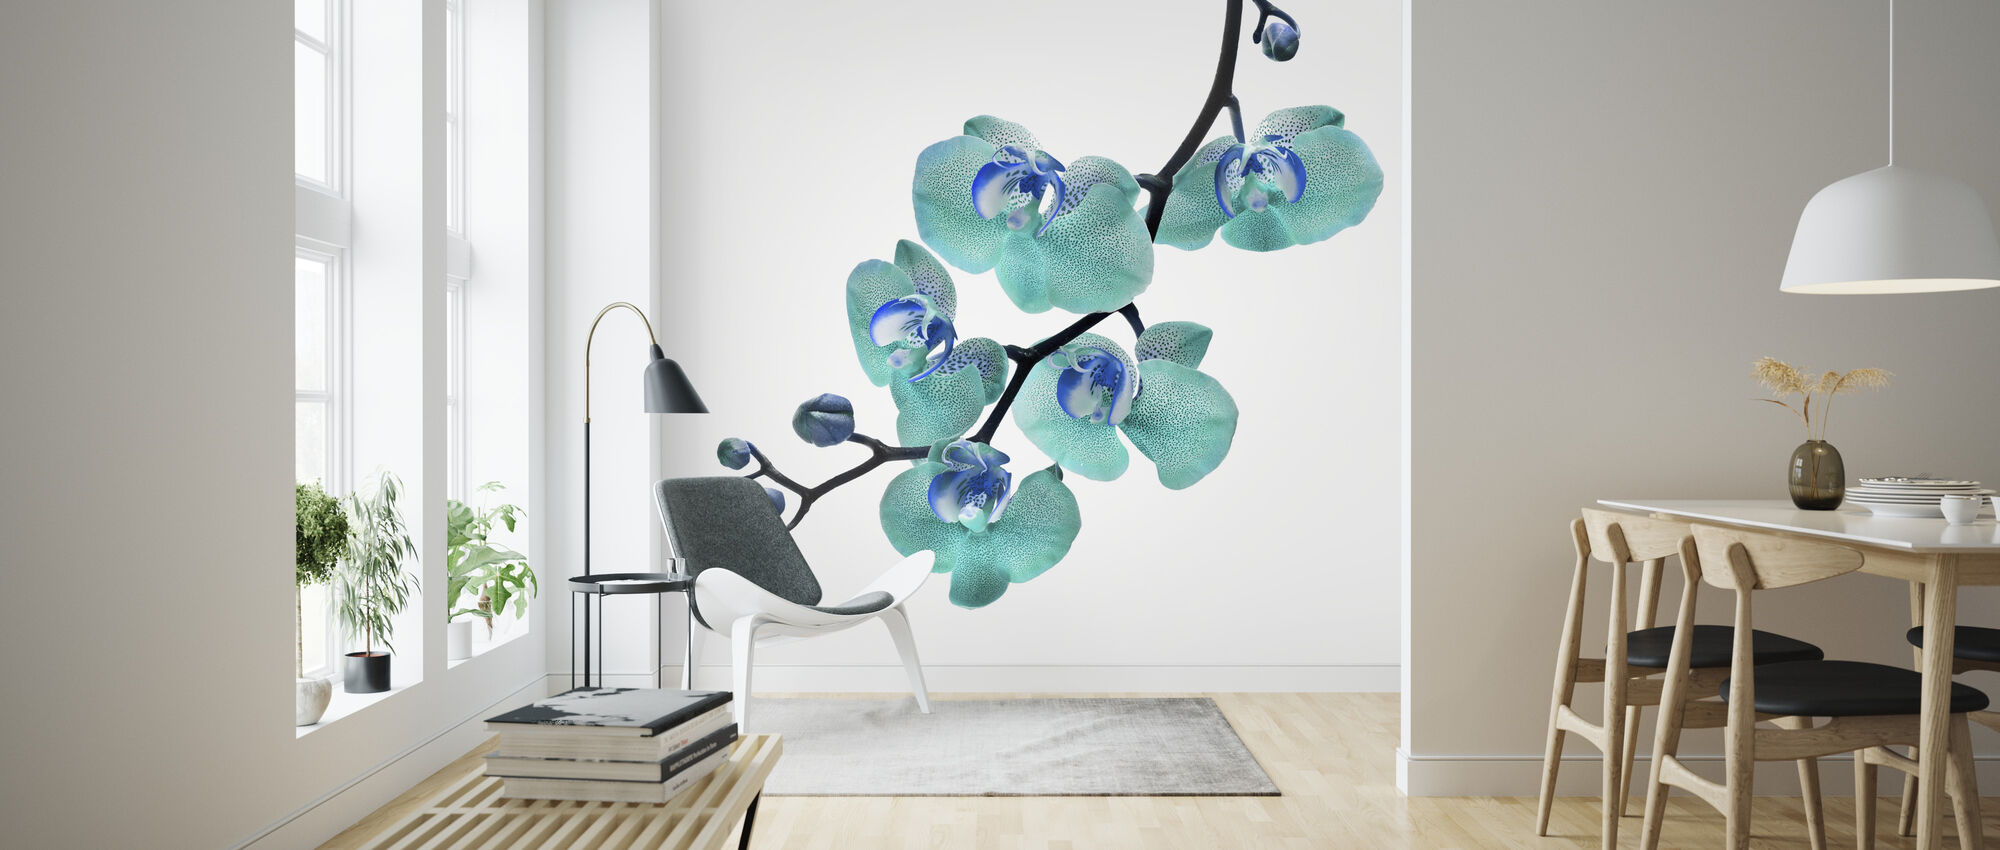 Blue Phalaenopsis Orchid - Wallpaper - Living Room